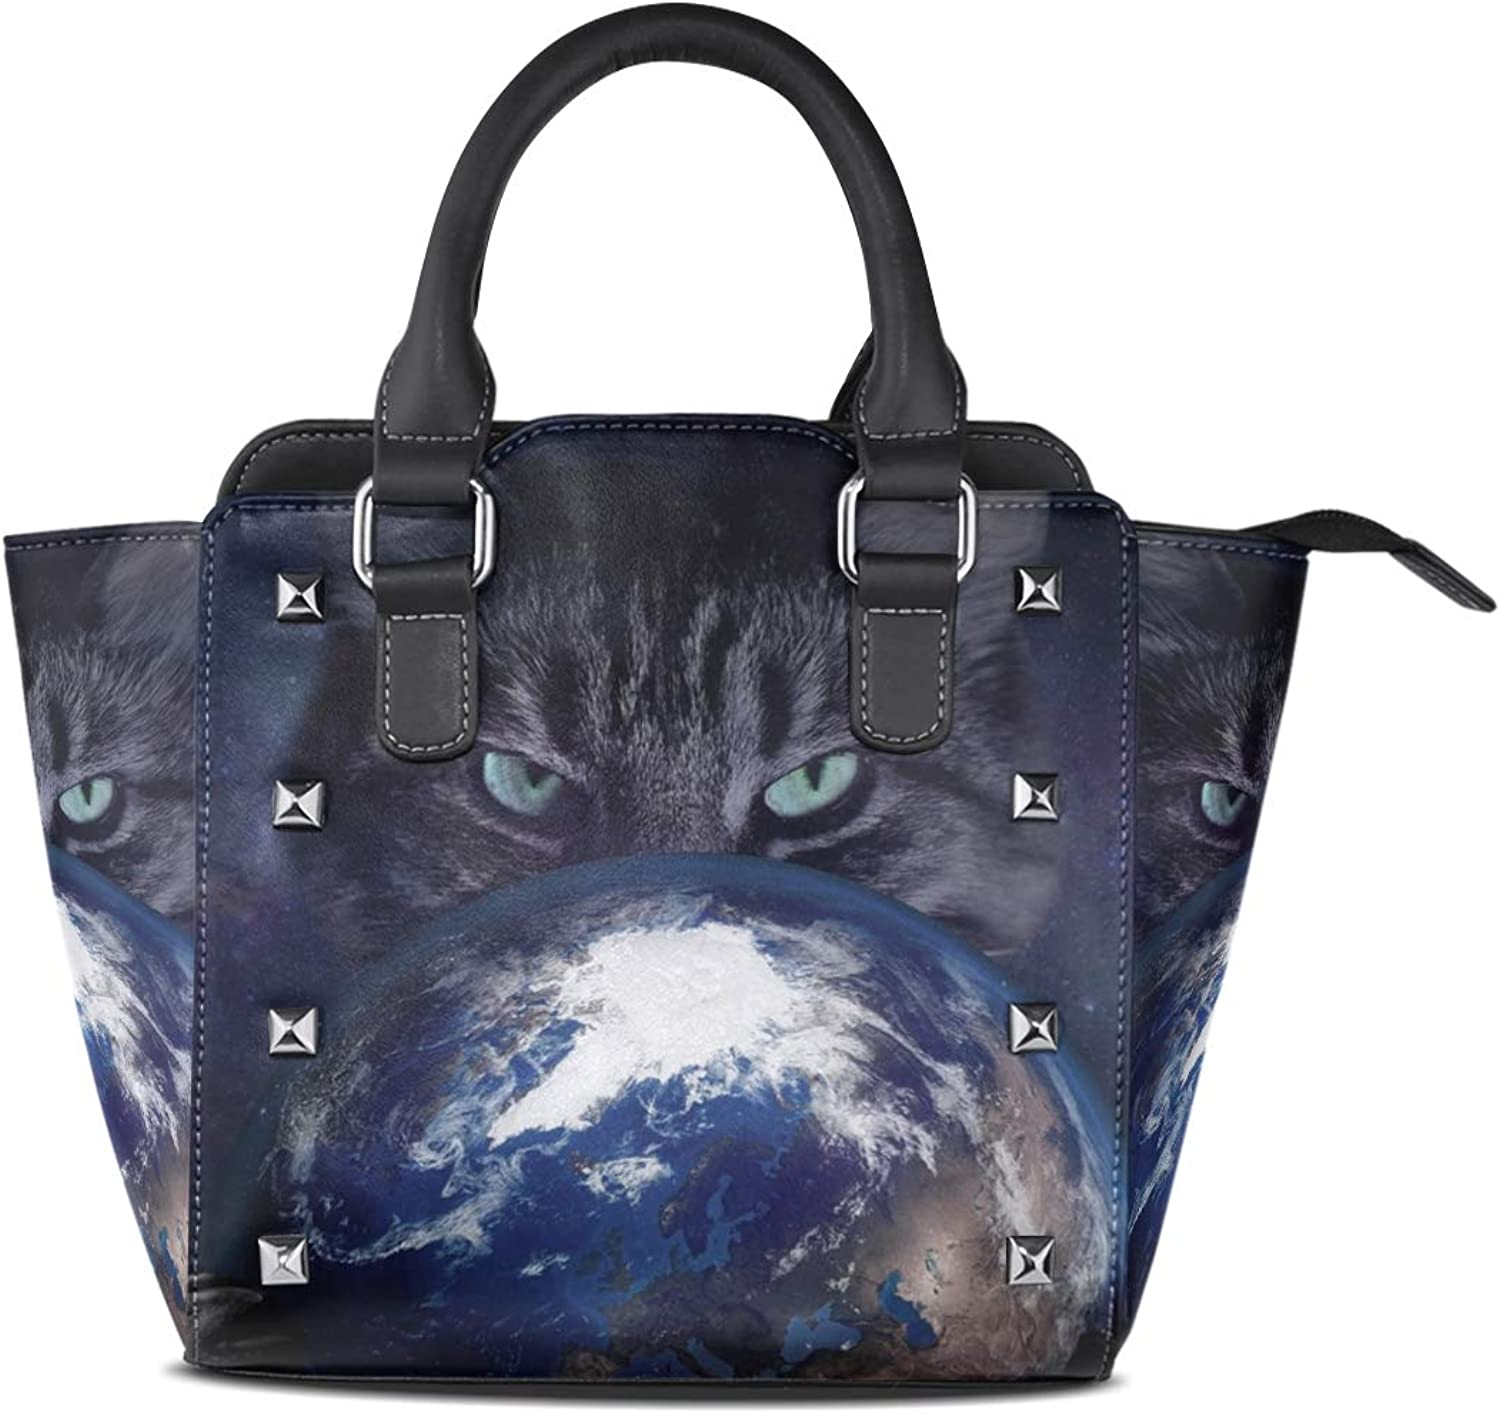 Leather Galaxy Earth Cat Rivet Handbags Tote Bag Shoulder Satchel for Women Girls